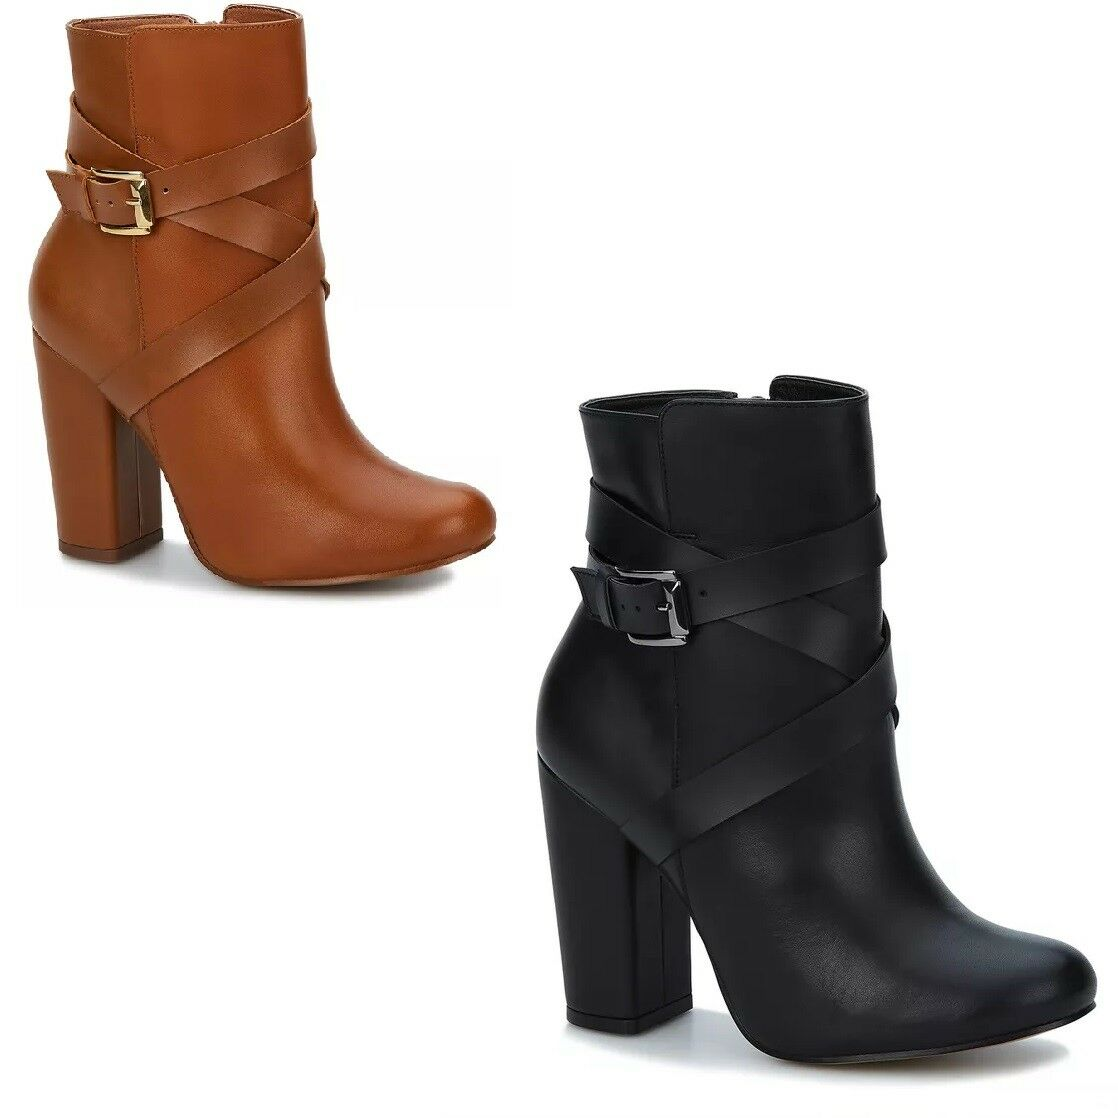 Brown or Black Leather Women Low Boot in a Modern Look and Zipper Closure